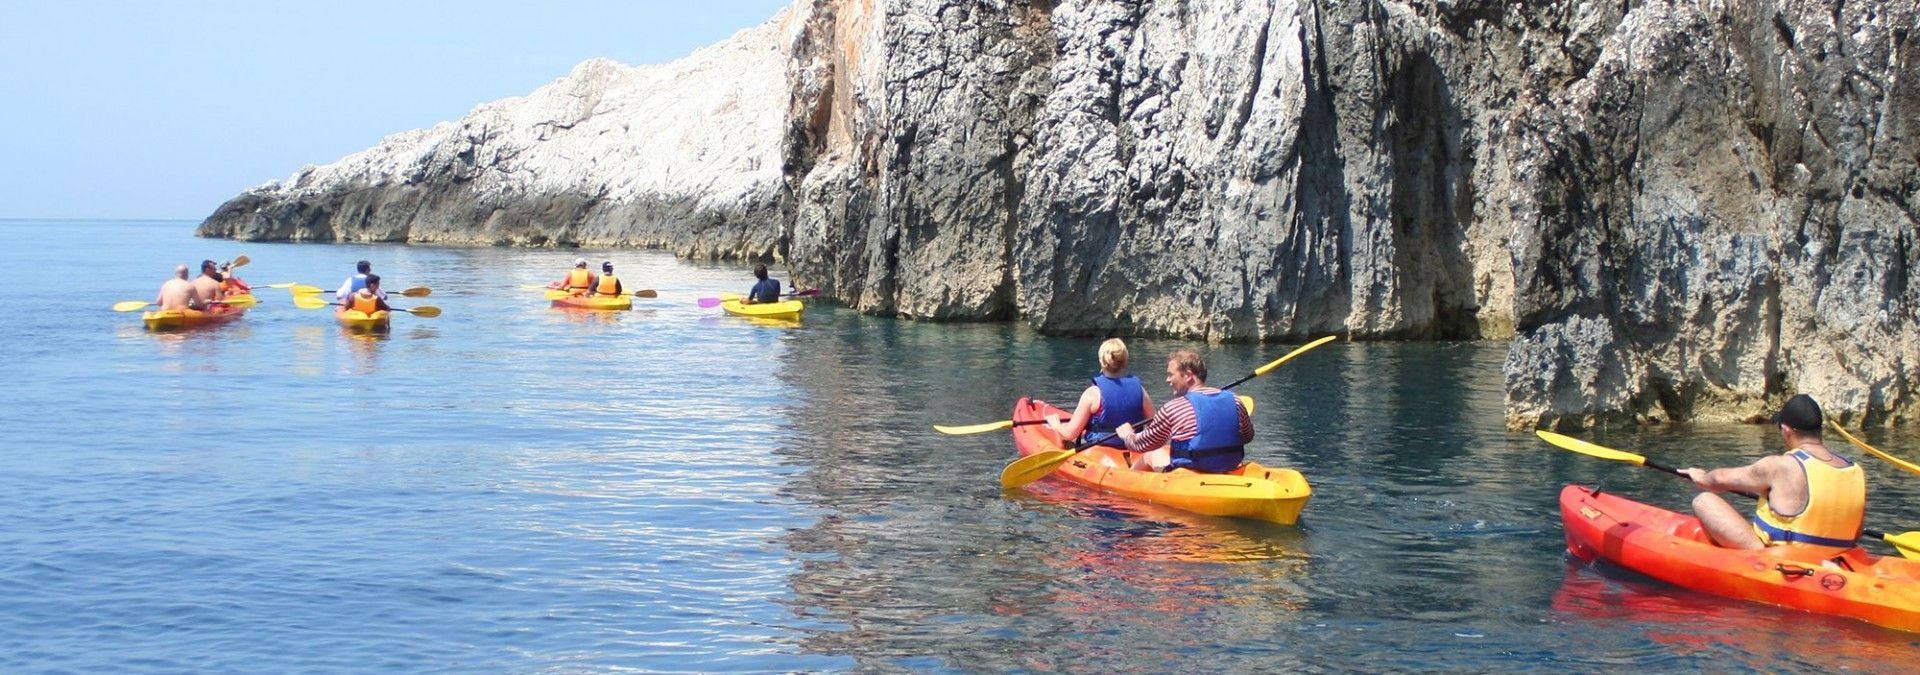 Croatia_Lim_Bay_Sea_Kayak.jpg